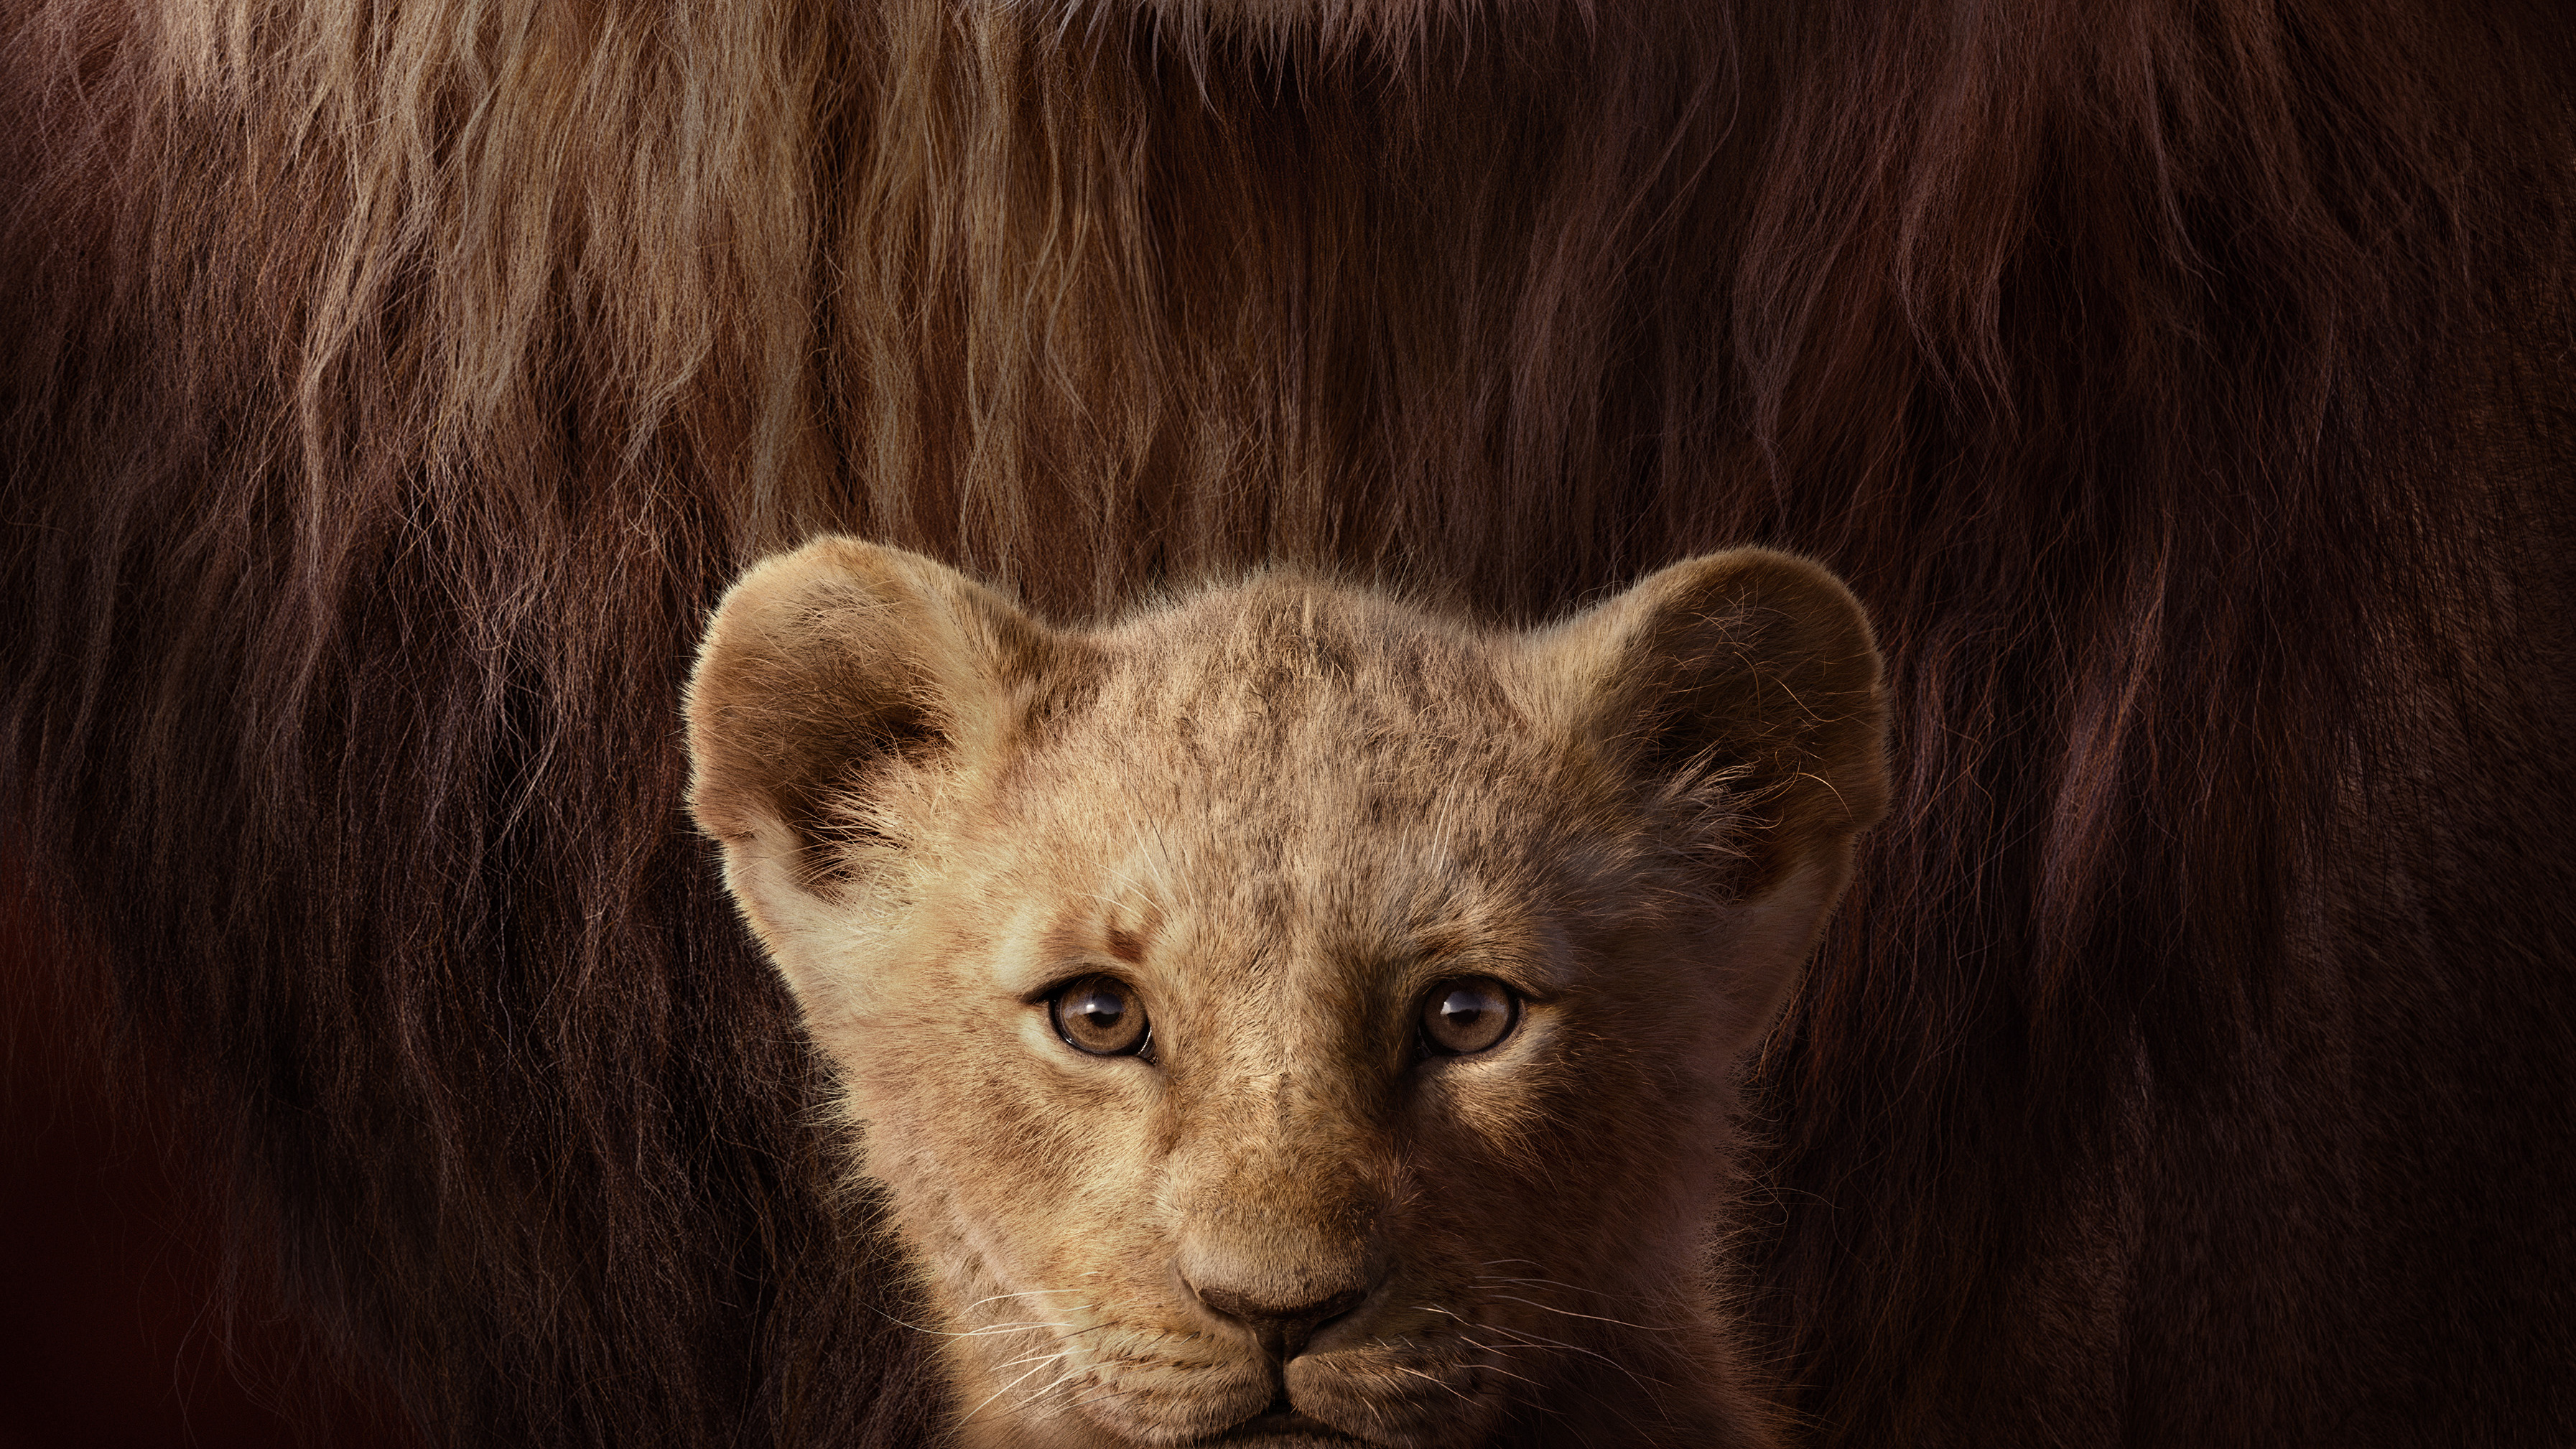 Movie Poster Lion King 2019 , HD Wallpaper & Backgrounds